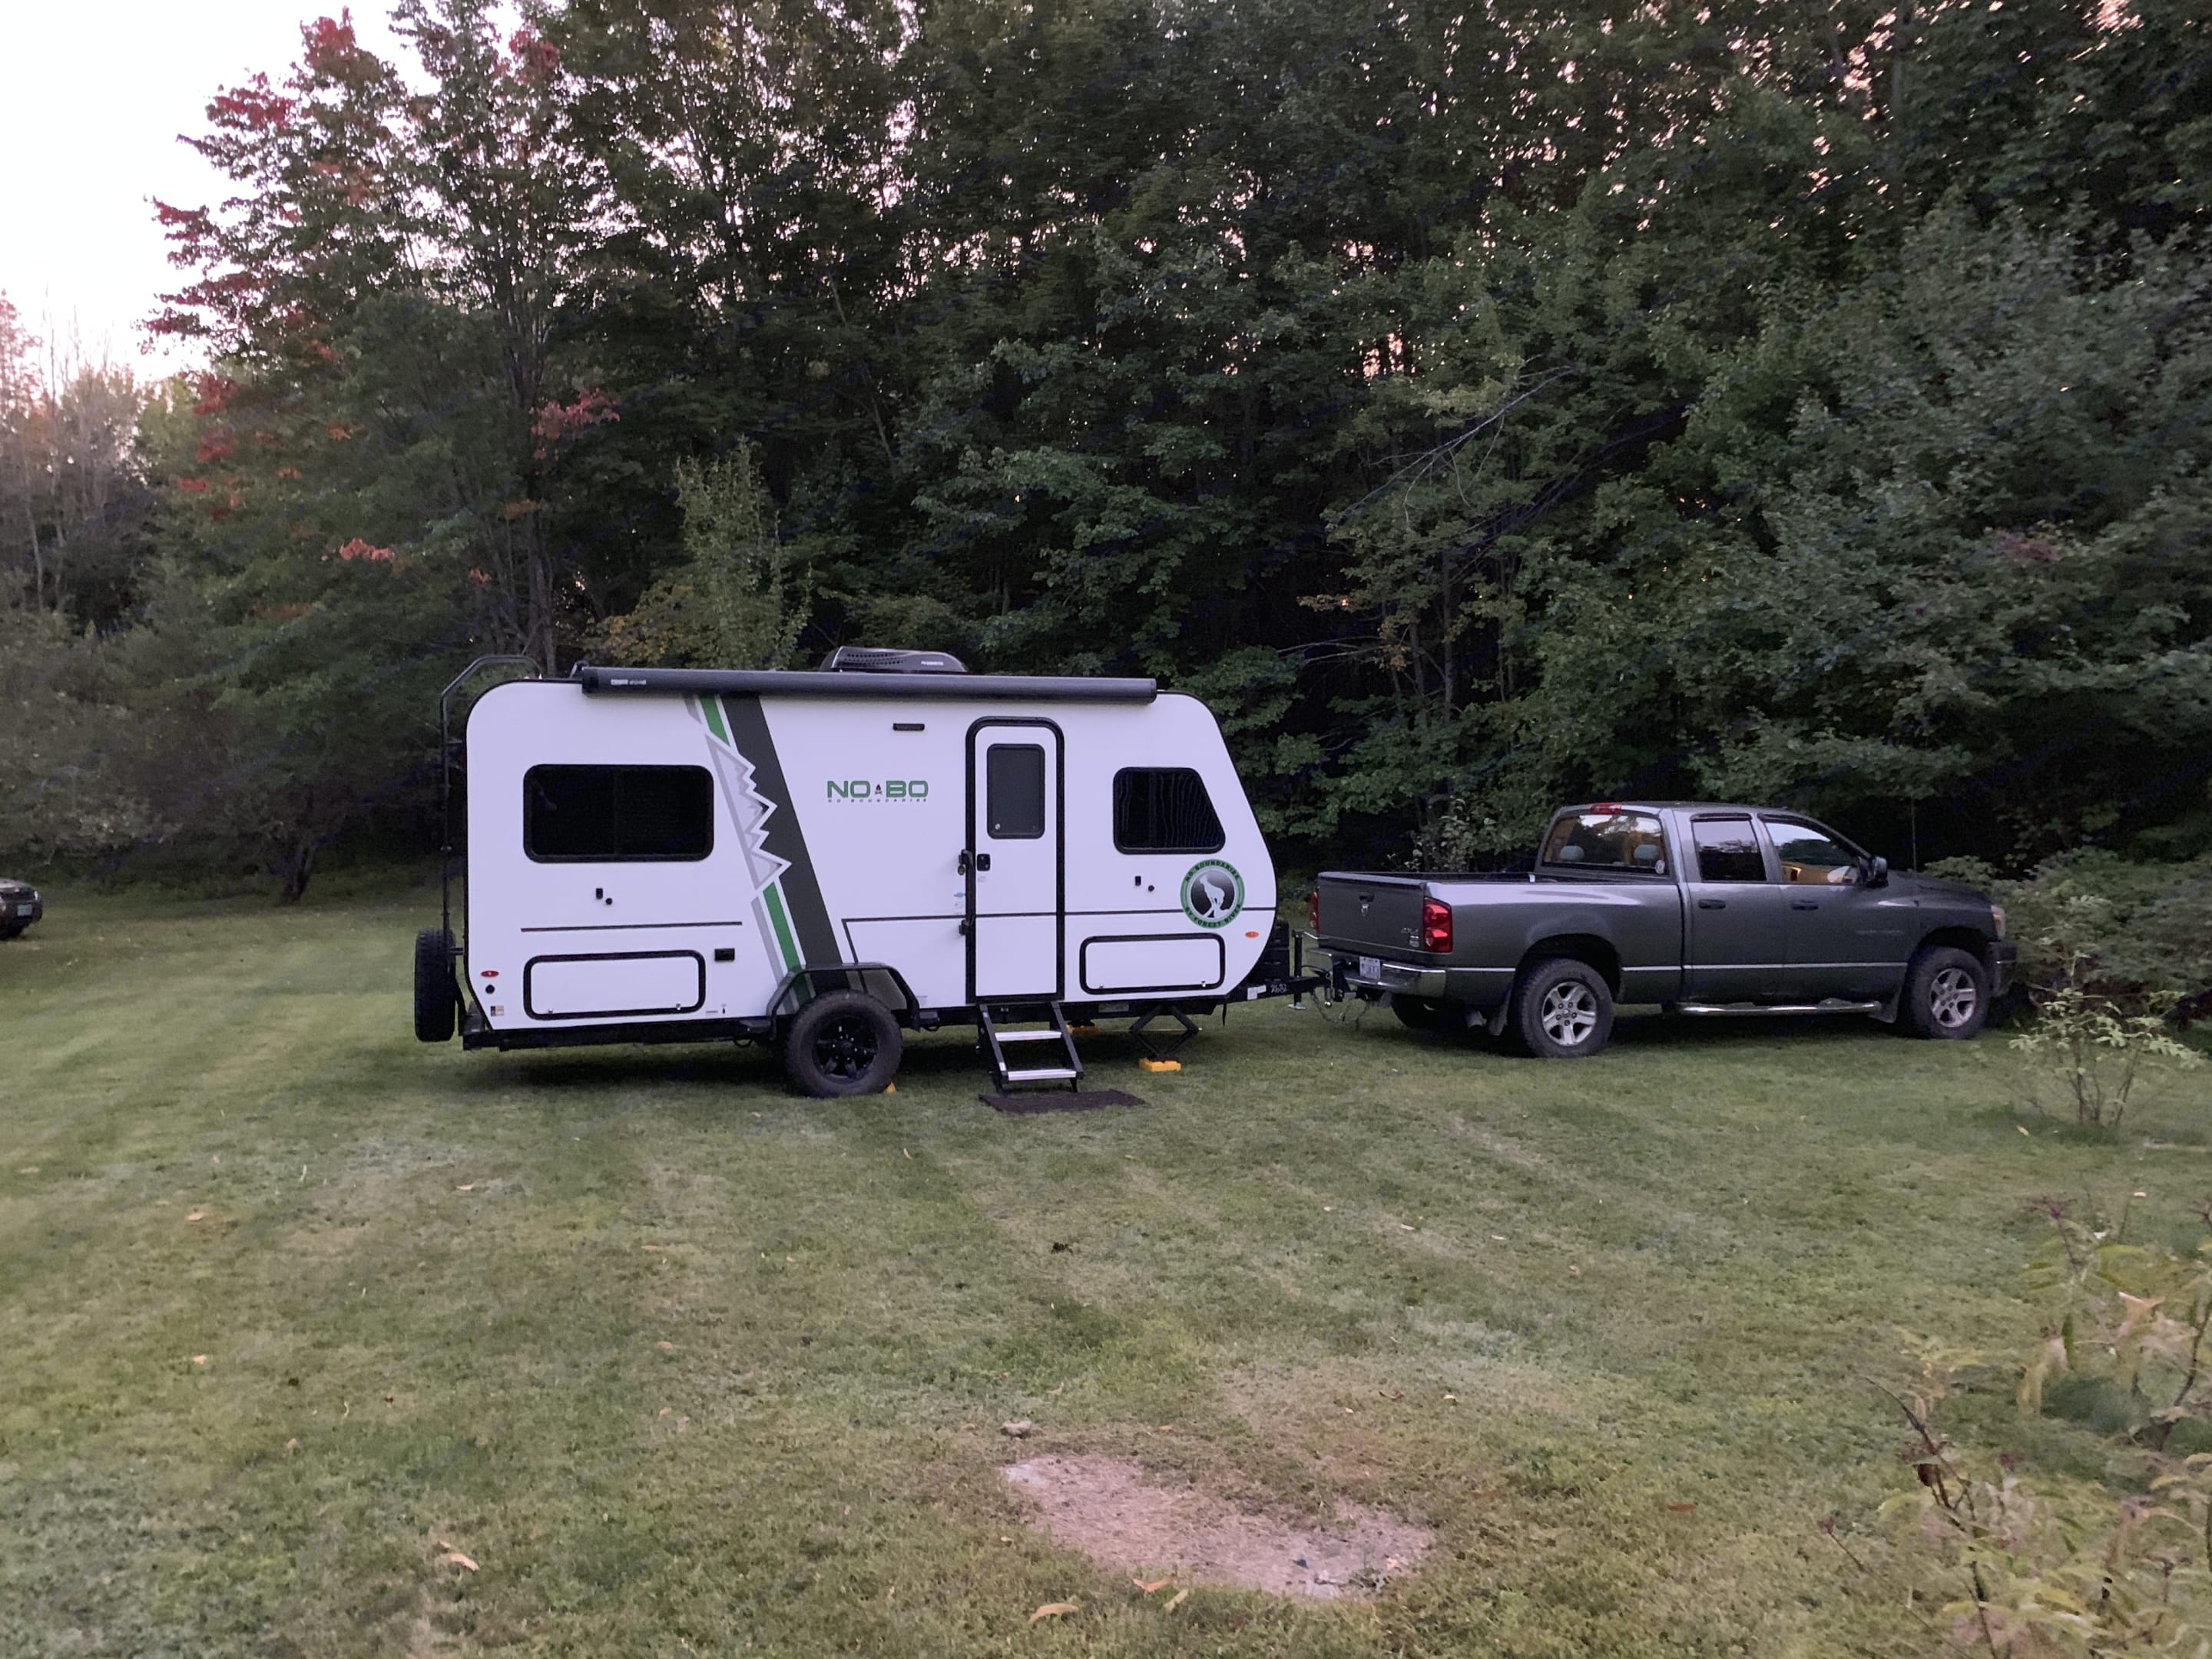 Towed by a 2007 1500 Dodge Ram. Forest River NoBo 16.5 2019